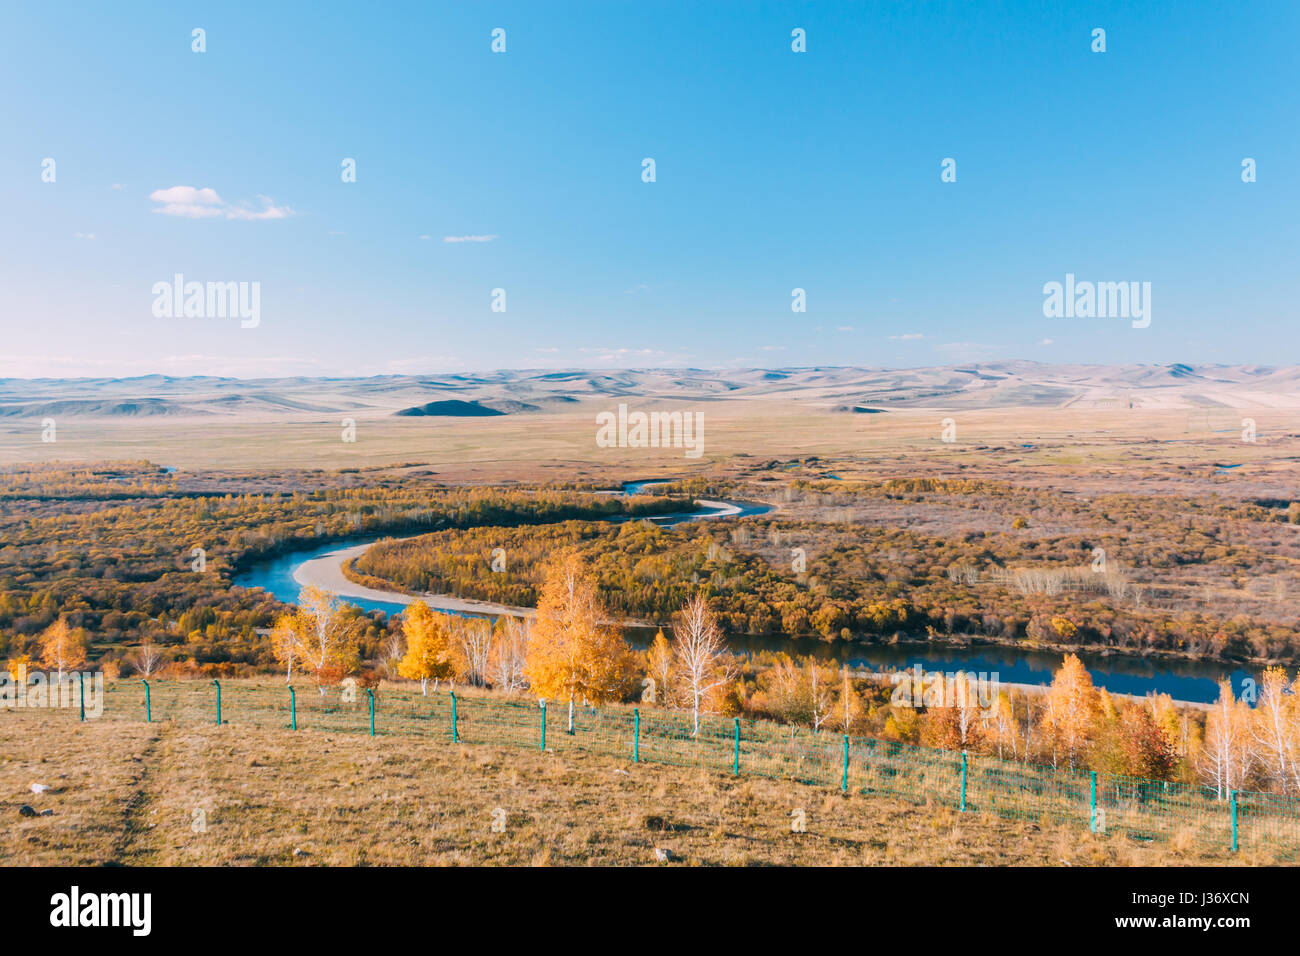 on a moutain of Inner Mongolia Hulun Buir River Genhe Wetland in Eergu'Na,known as 'Asia's first wetlands.', - Stock Image